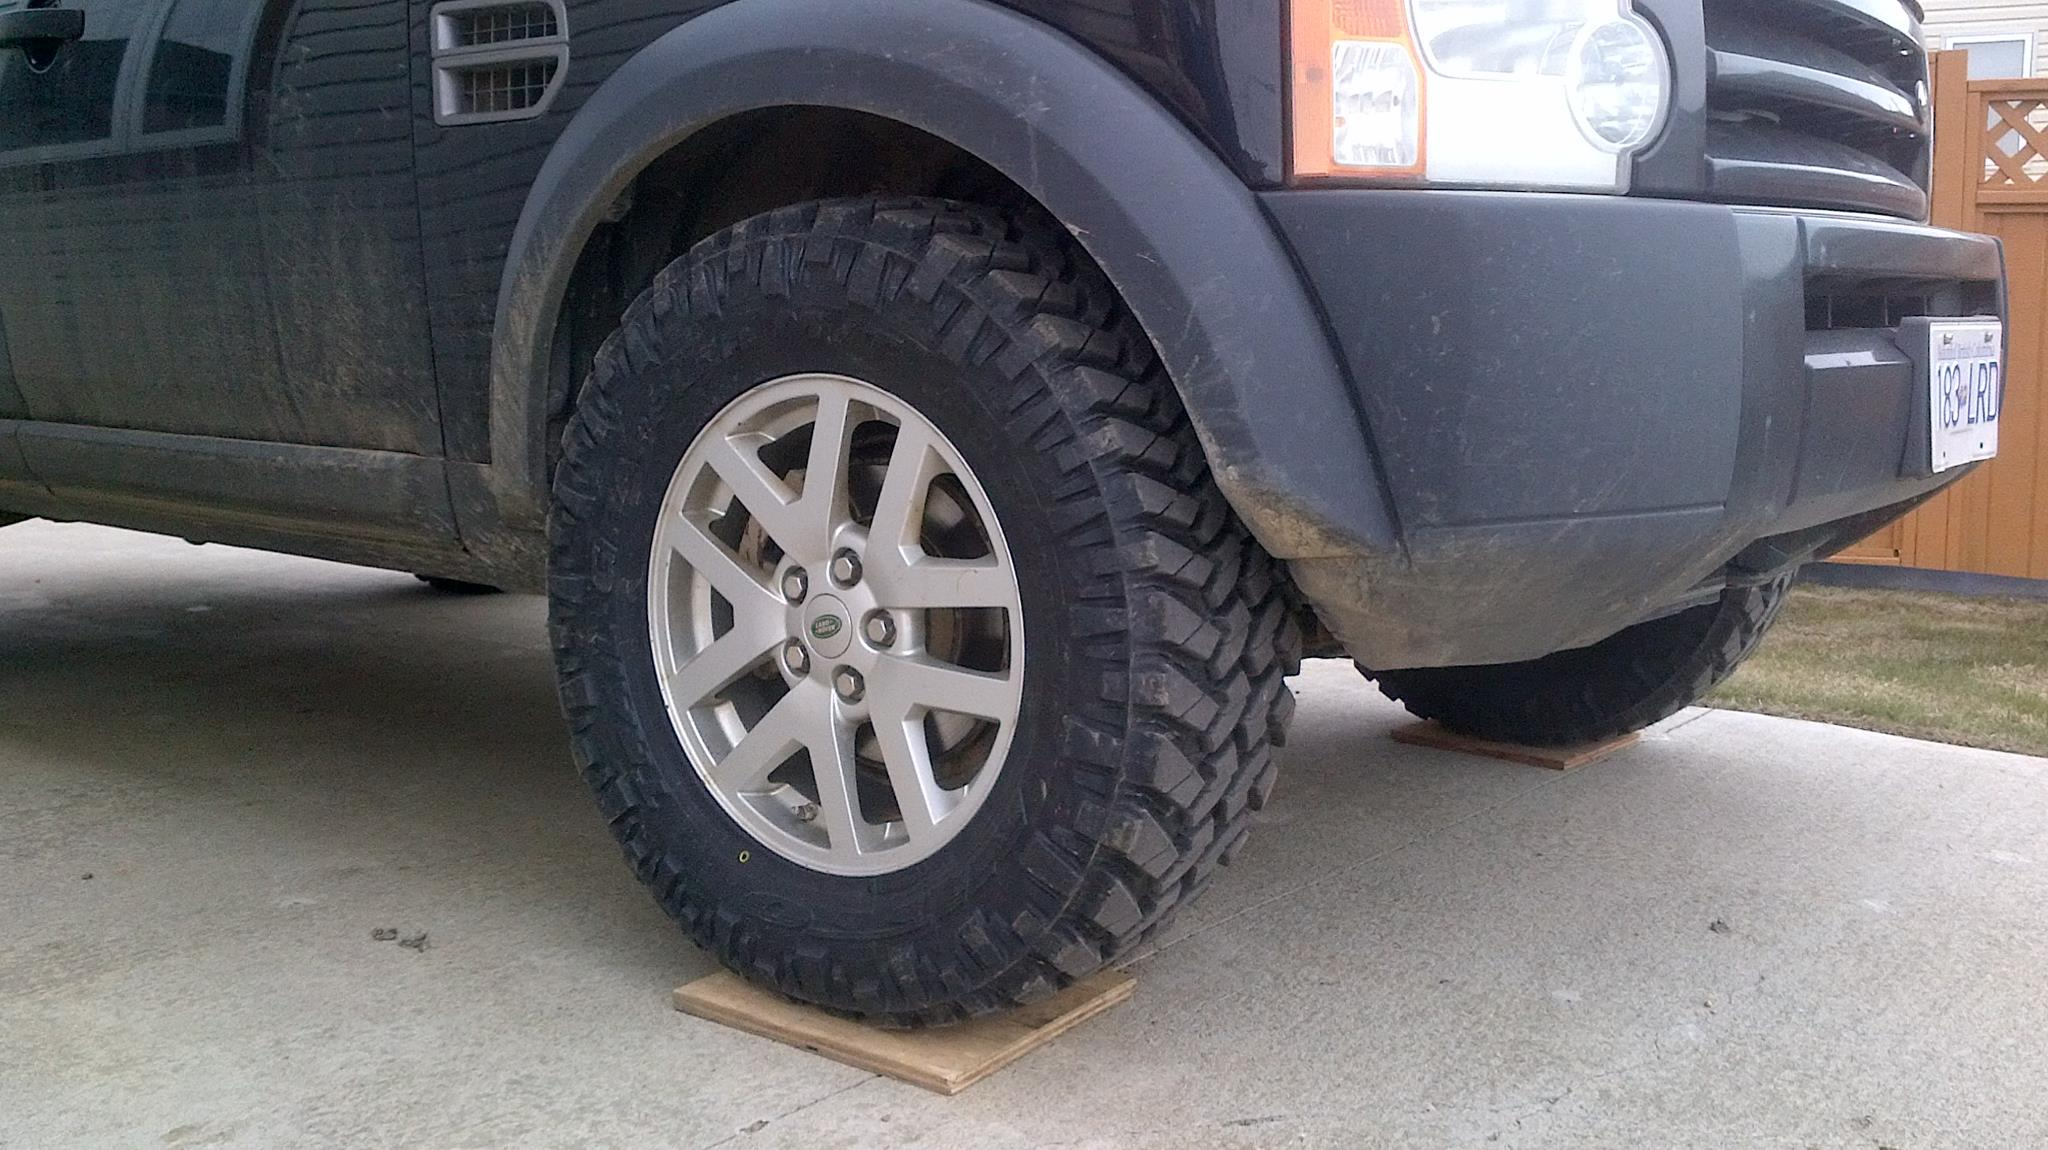 LR3 Wheel Spacer Adapters Land Rover Forums Land Rover